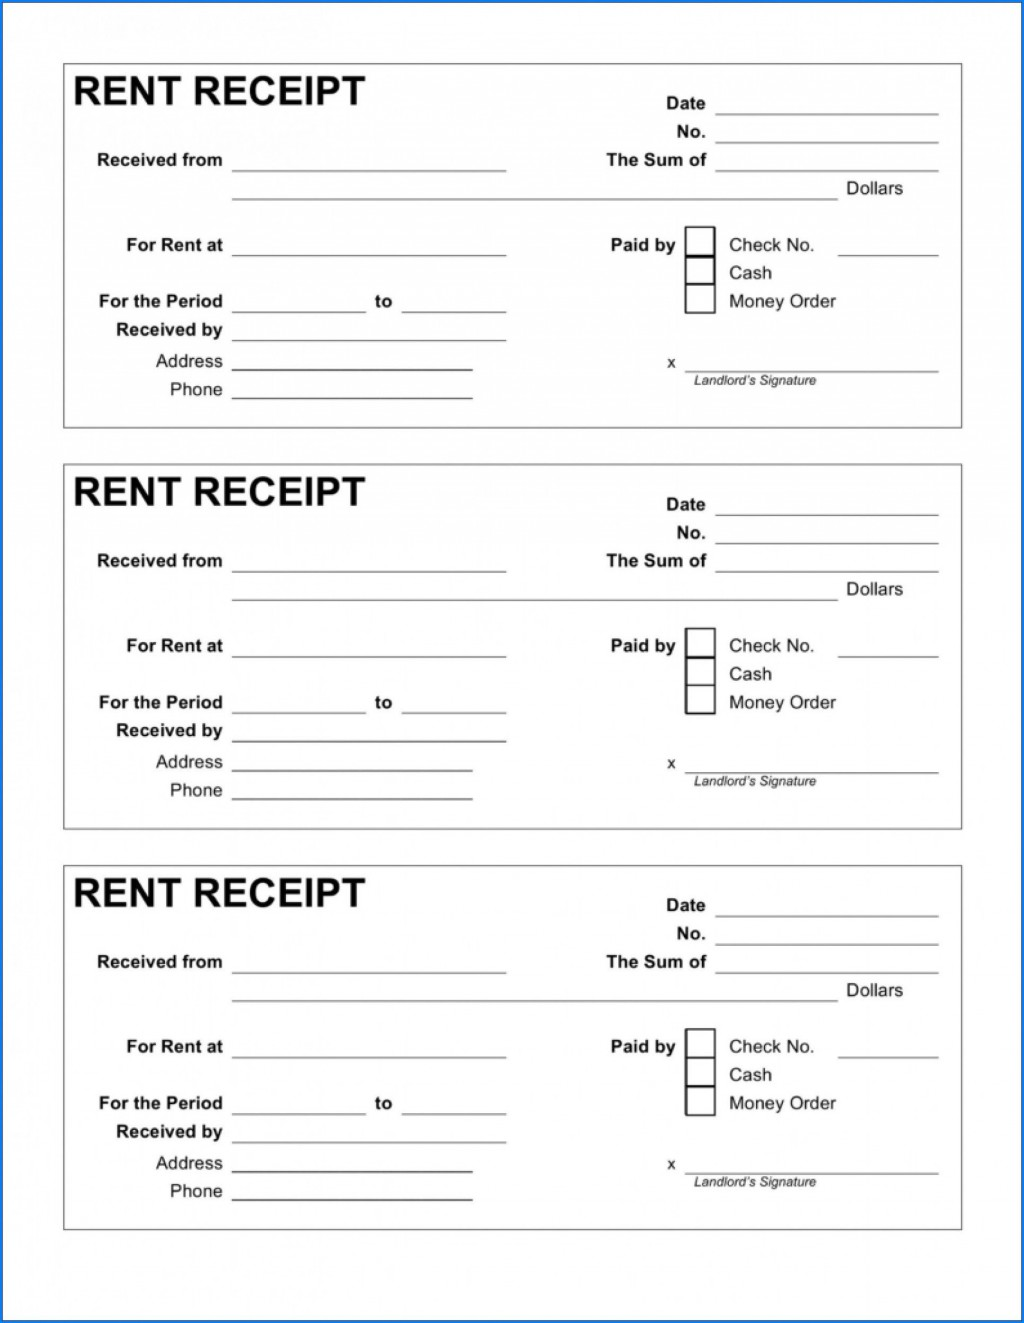 004 Beautiful House Rent Receipt Sample Doc Example  Template India Bill Format Word Document Pdf DownloadLarge